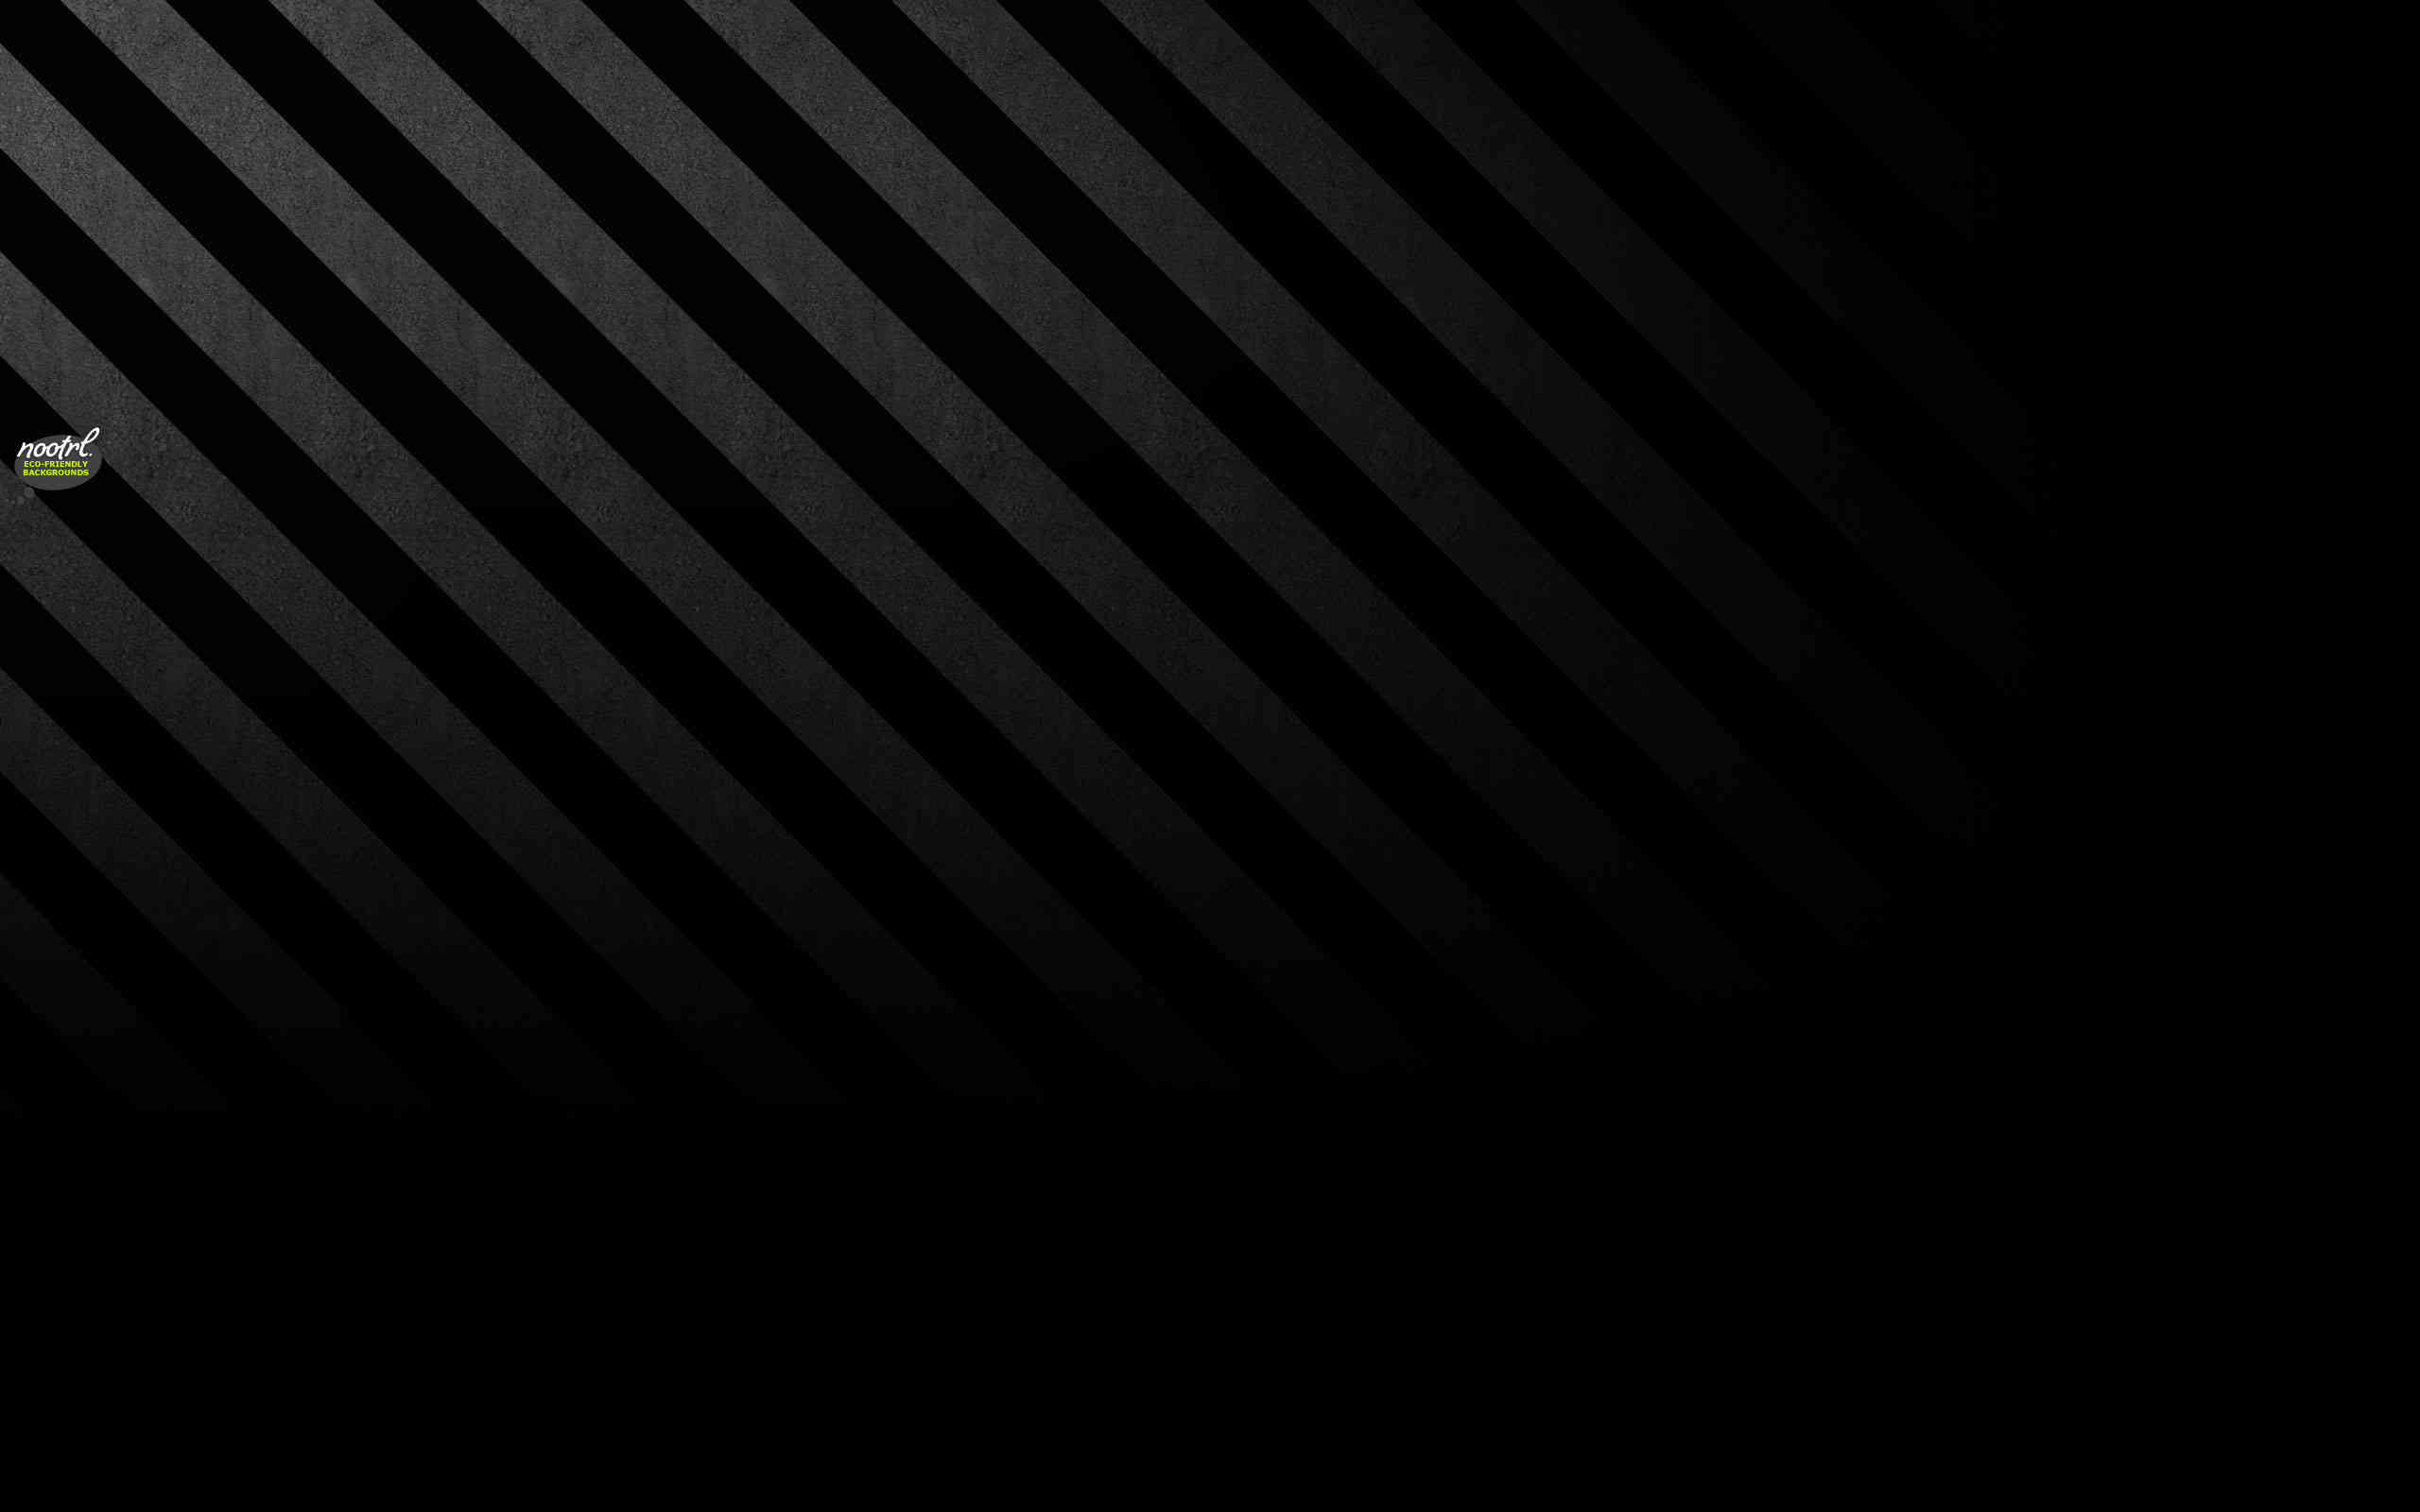 Black And Grey Striped Background Horizontal Black And Grey 2560x1600